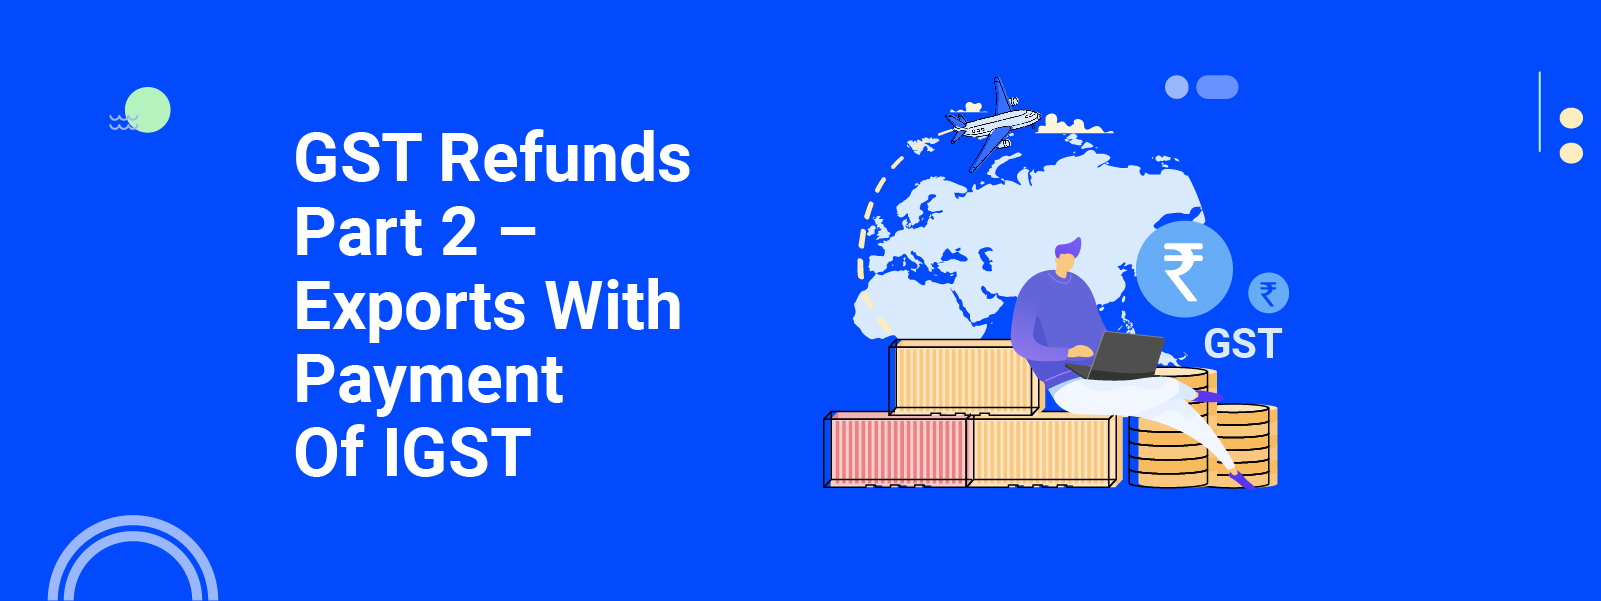 GST Refunds Part 2 – Exports With Payment Of IGST